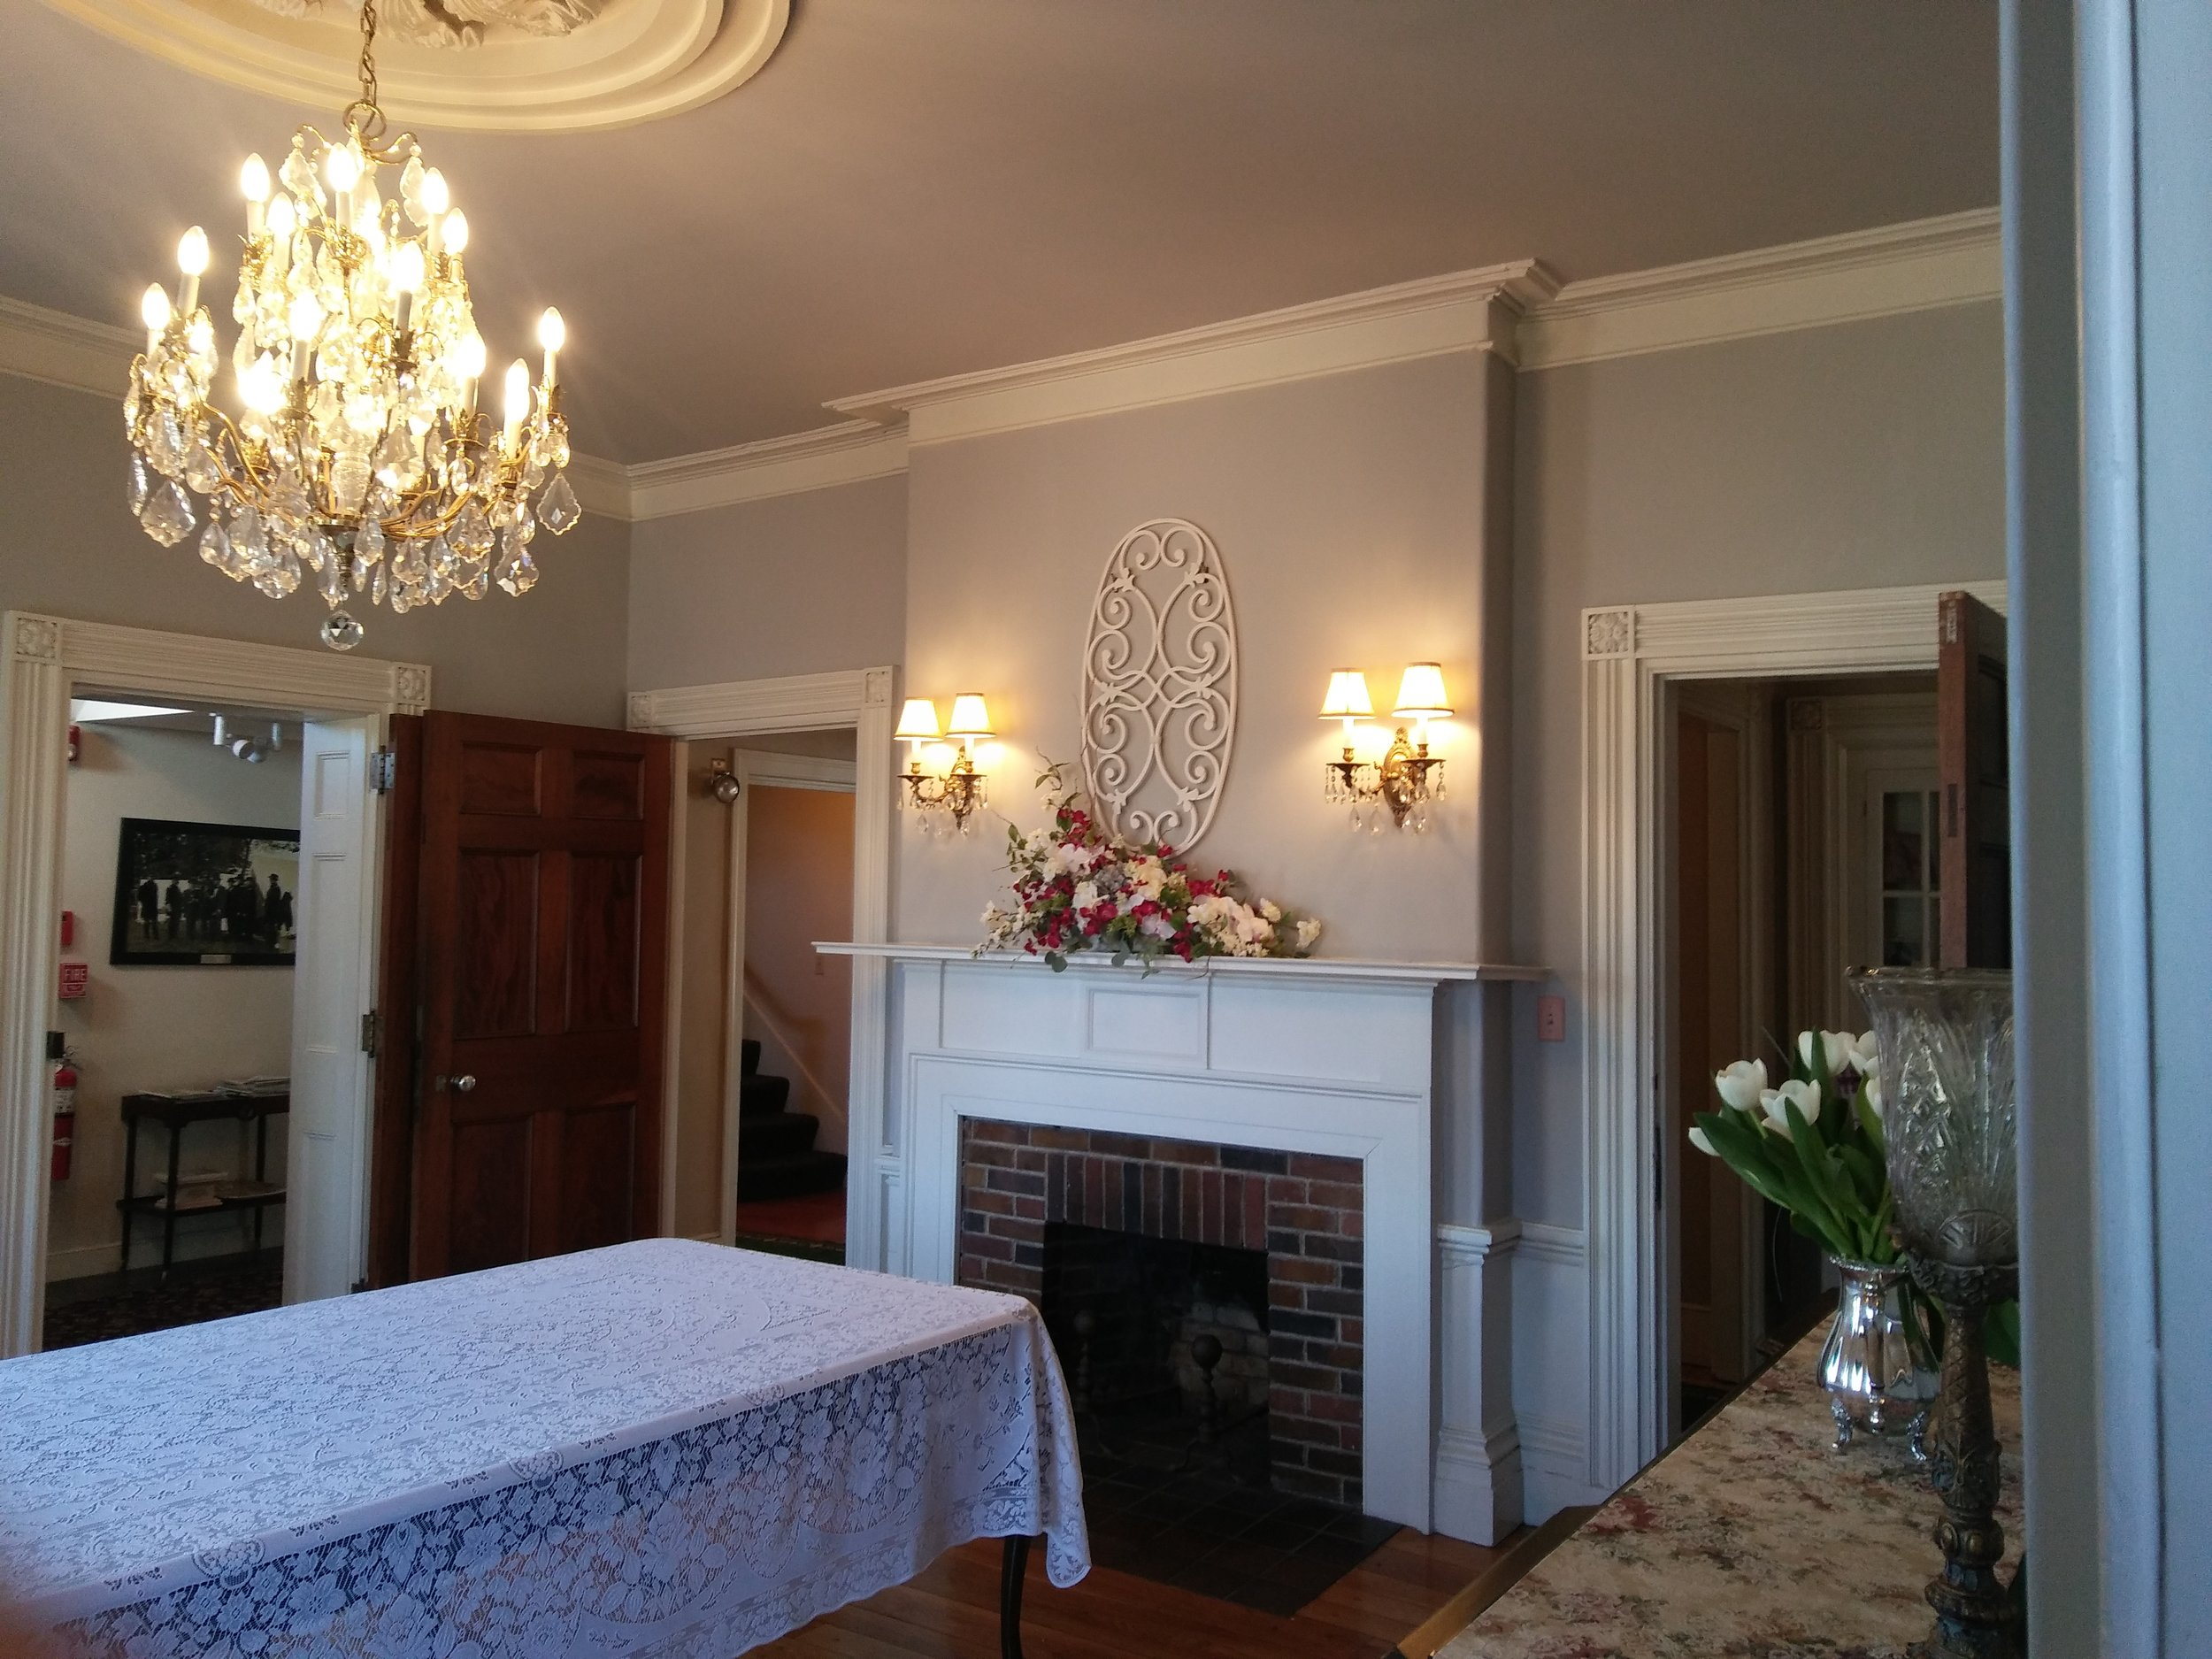 The Waters Family formal dining room: a popular setting for small gatherings or buffet set up for a larger event. Photo: Mary Bowen, Asa Waters Mansion.